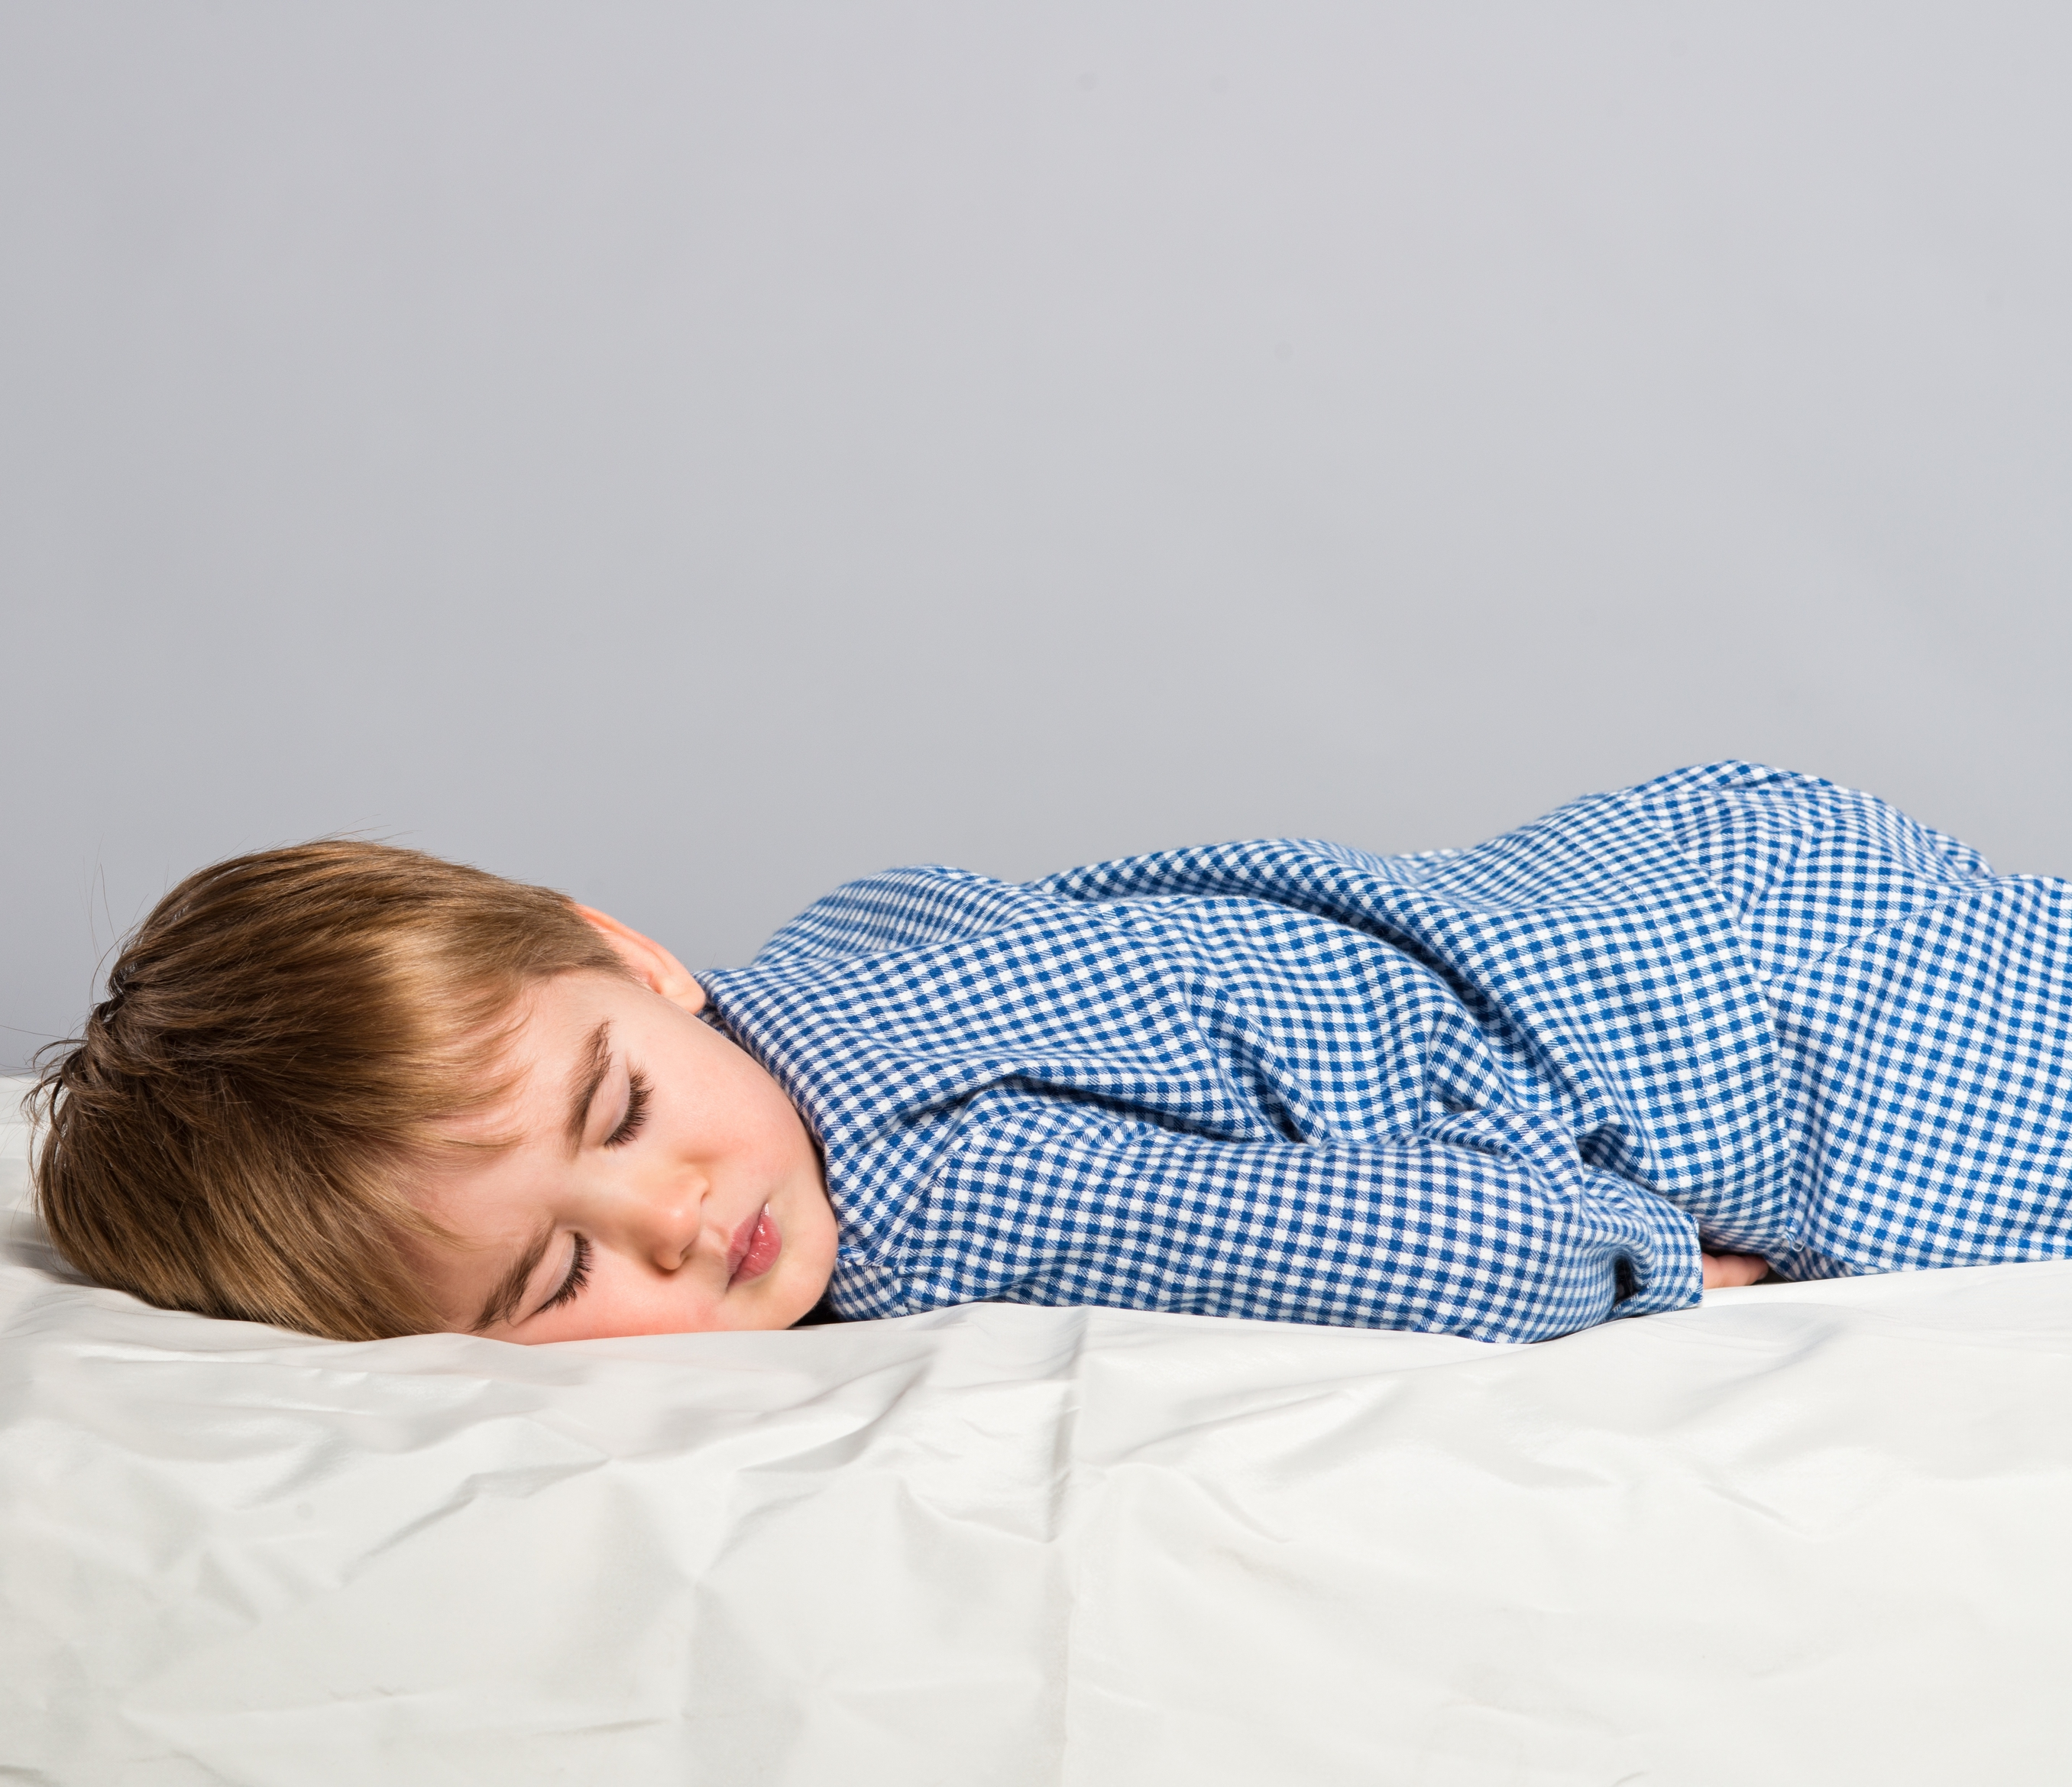 Frequent colds? Your child may not be getting enough of SLEEP!